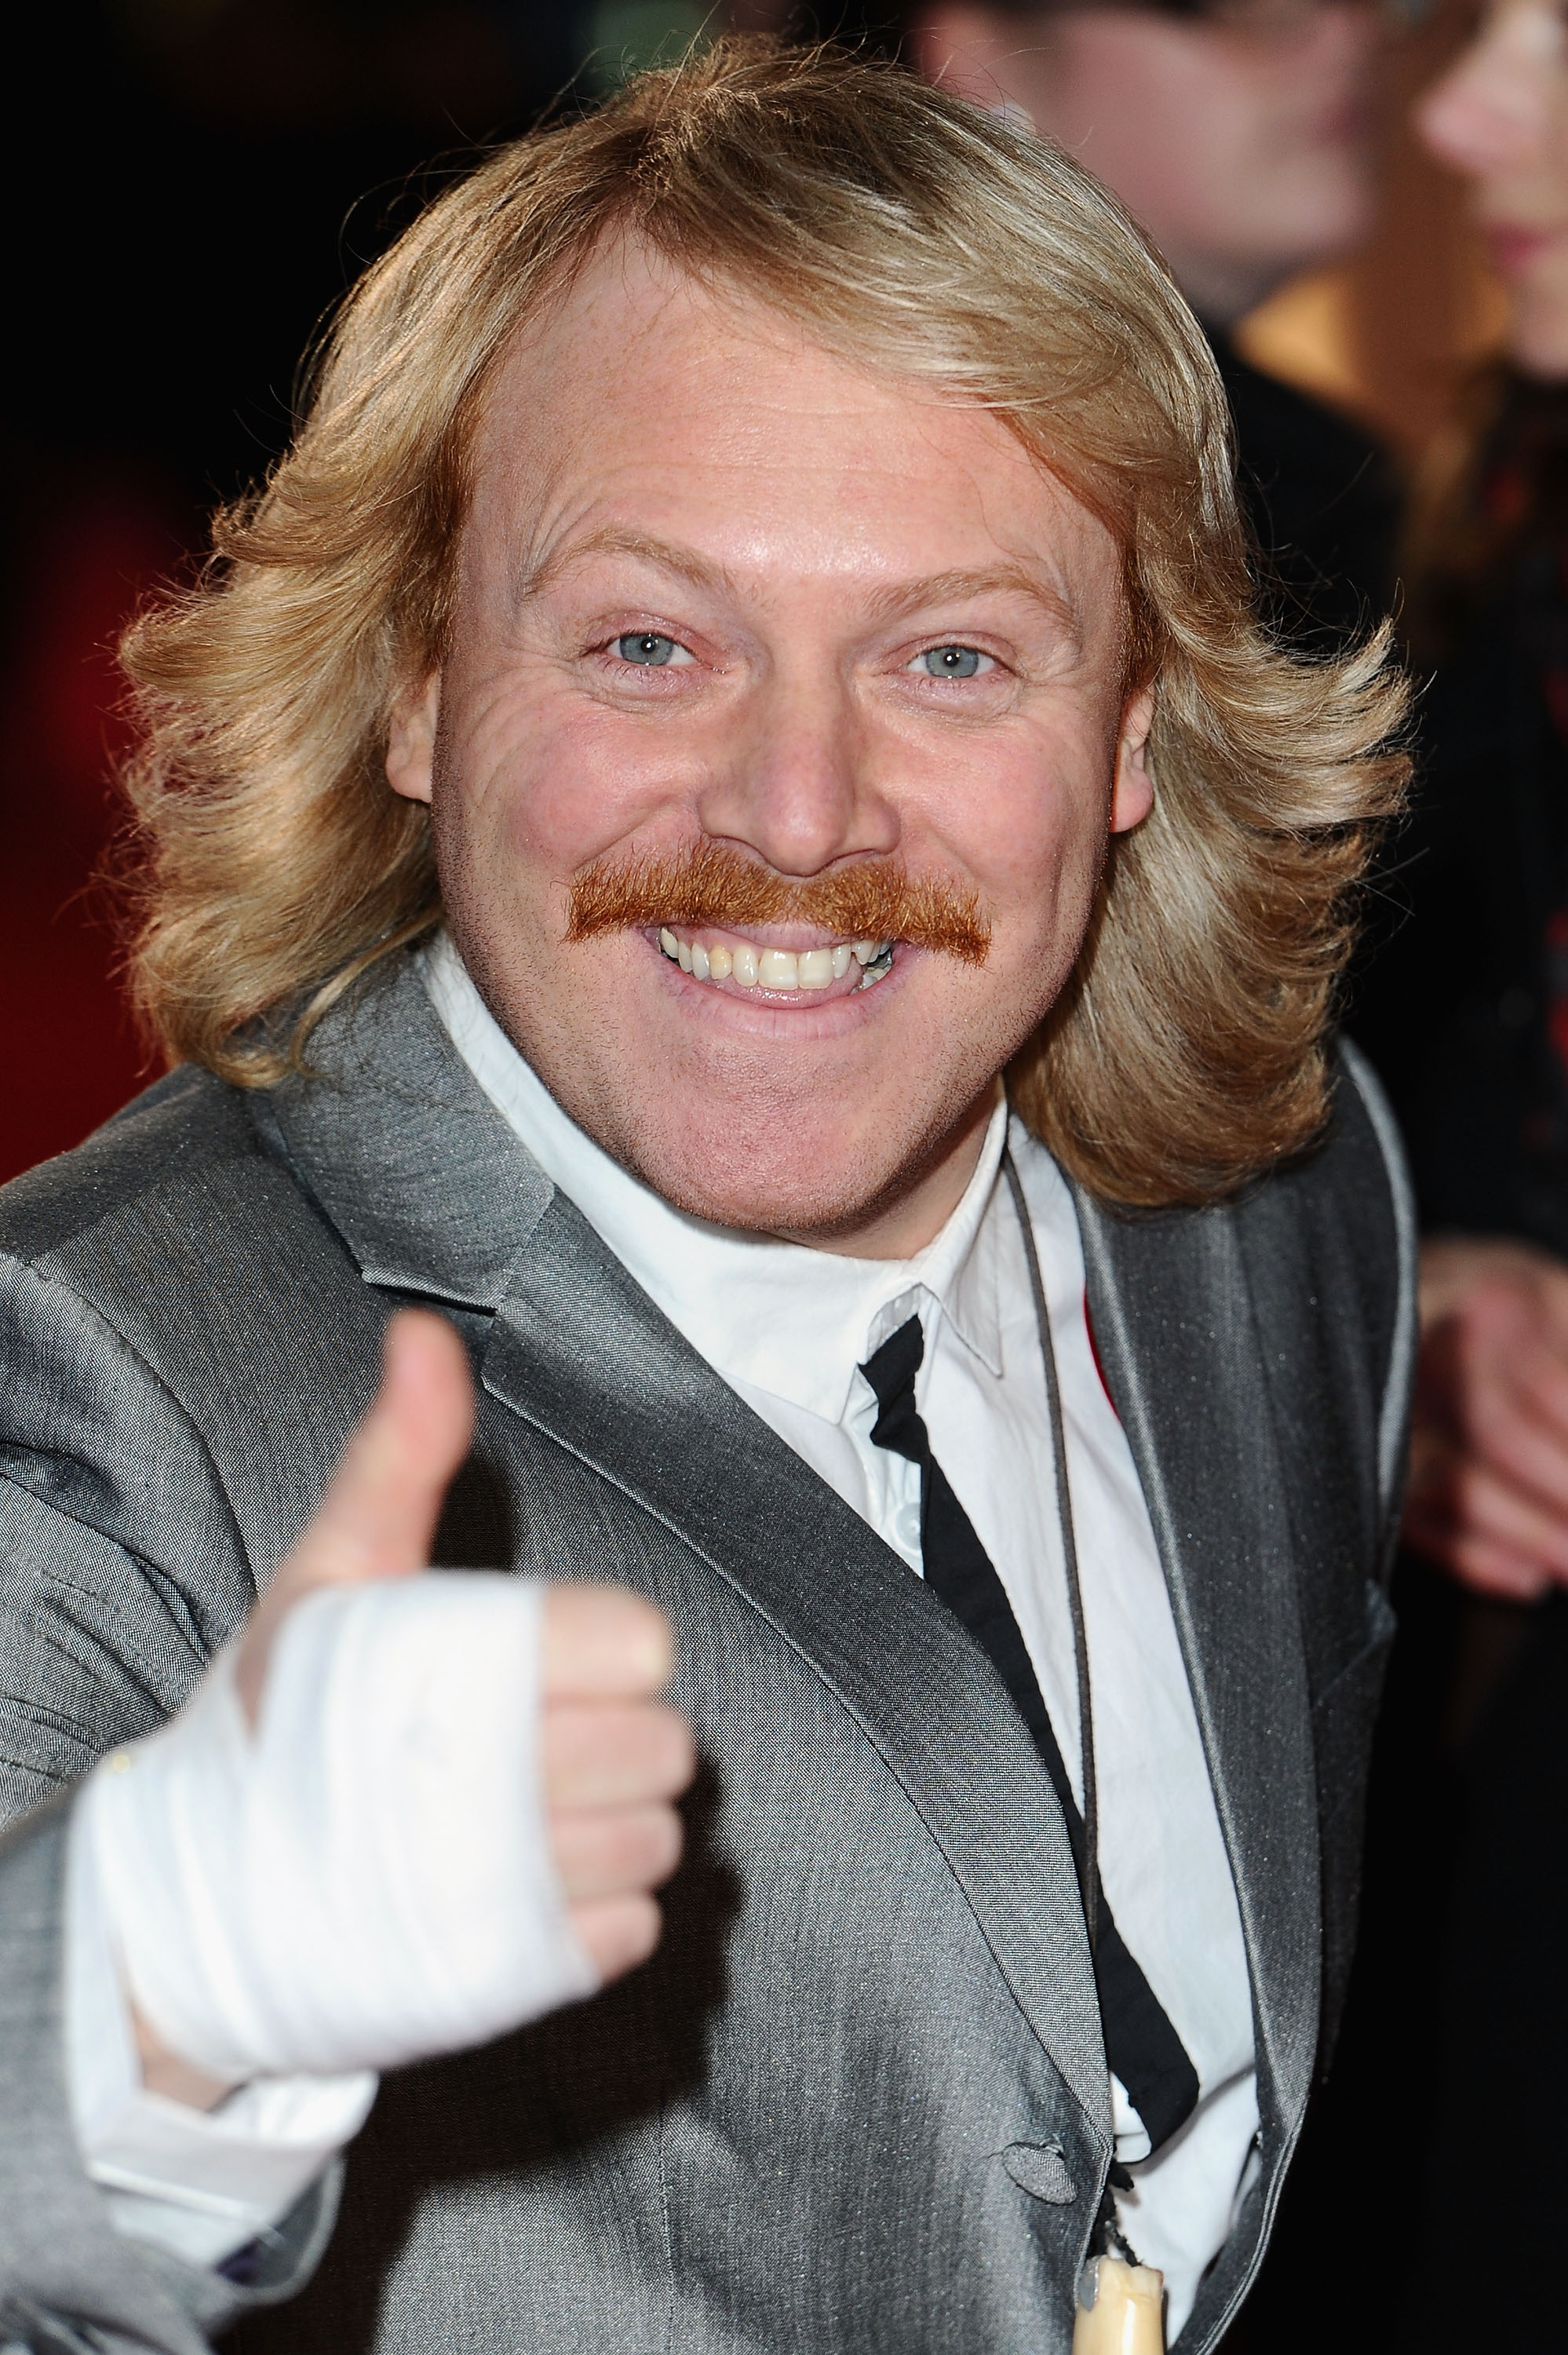 Keith Lemon Finally Reveals Reason For Bandage On Right Hand GettyImages 109113540